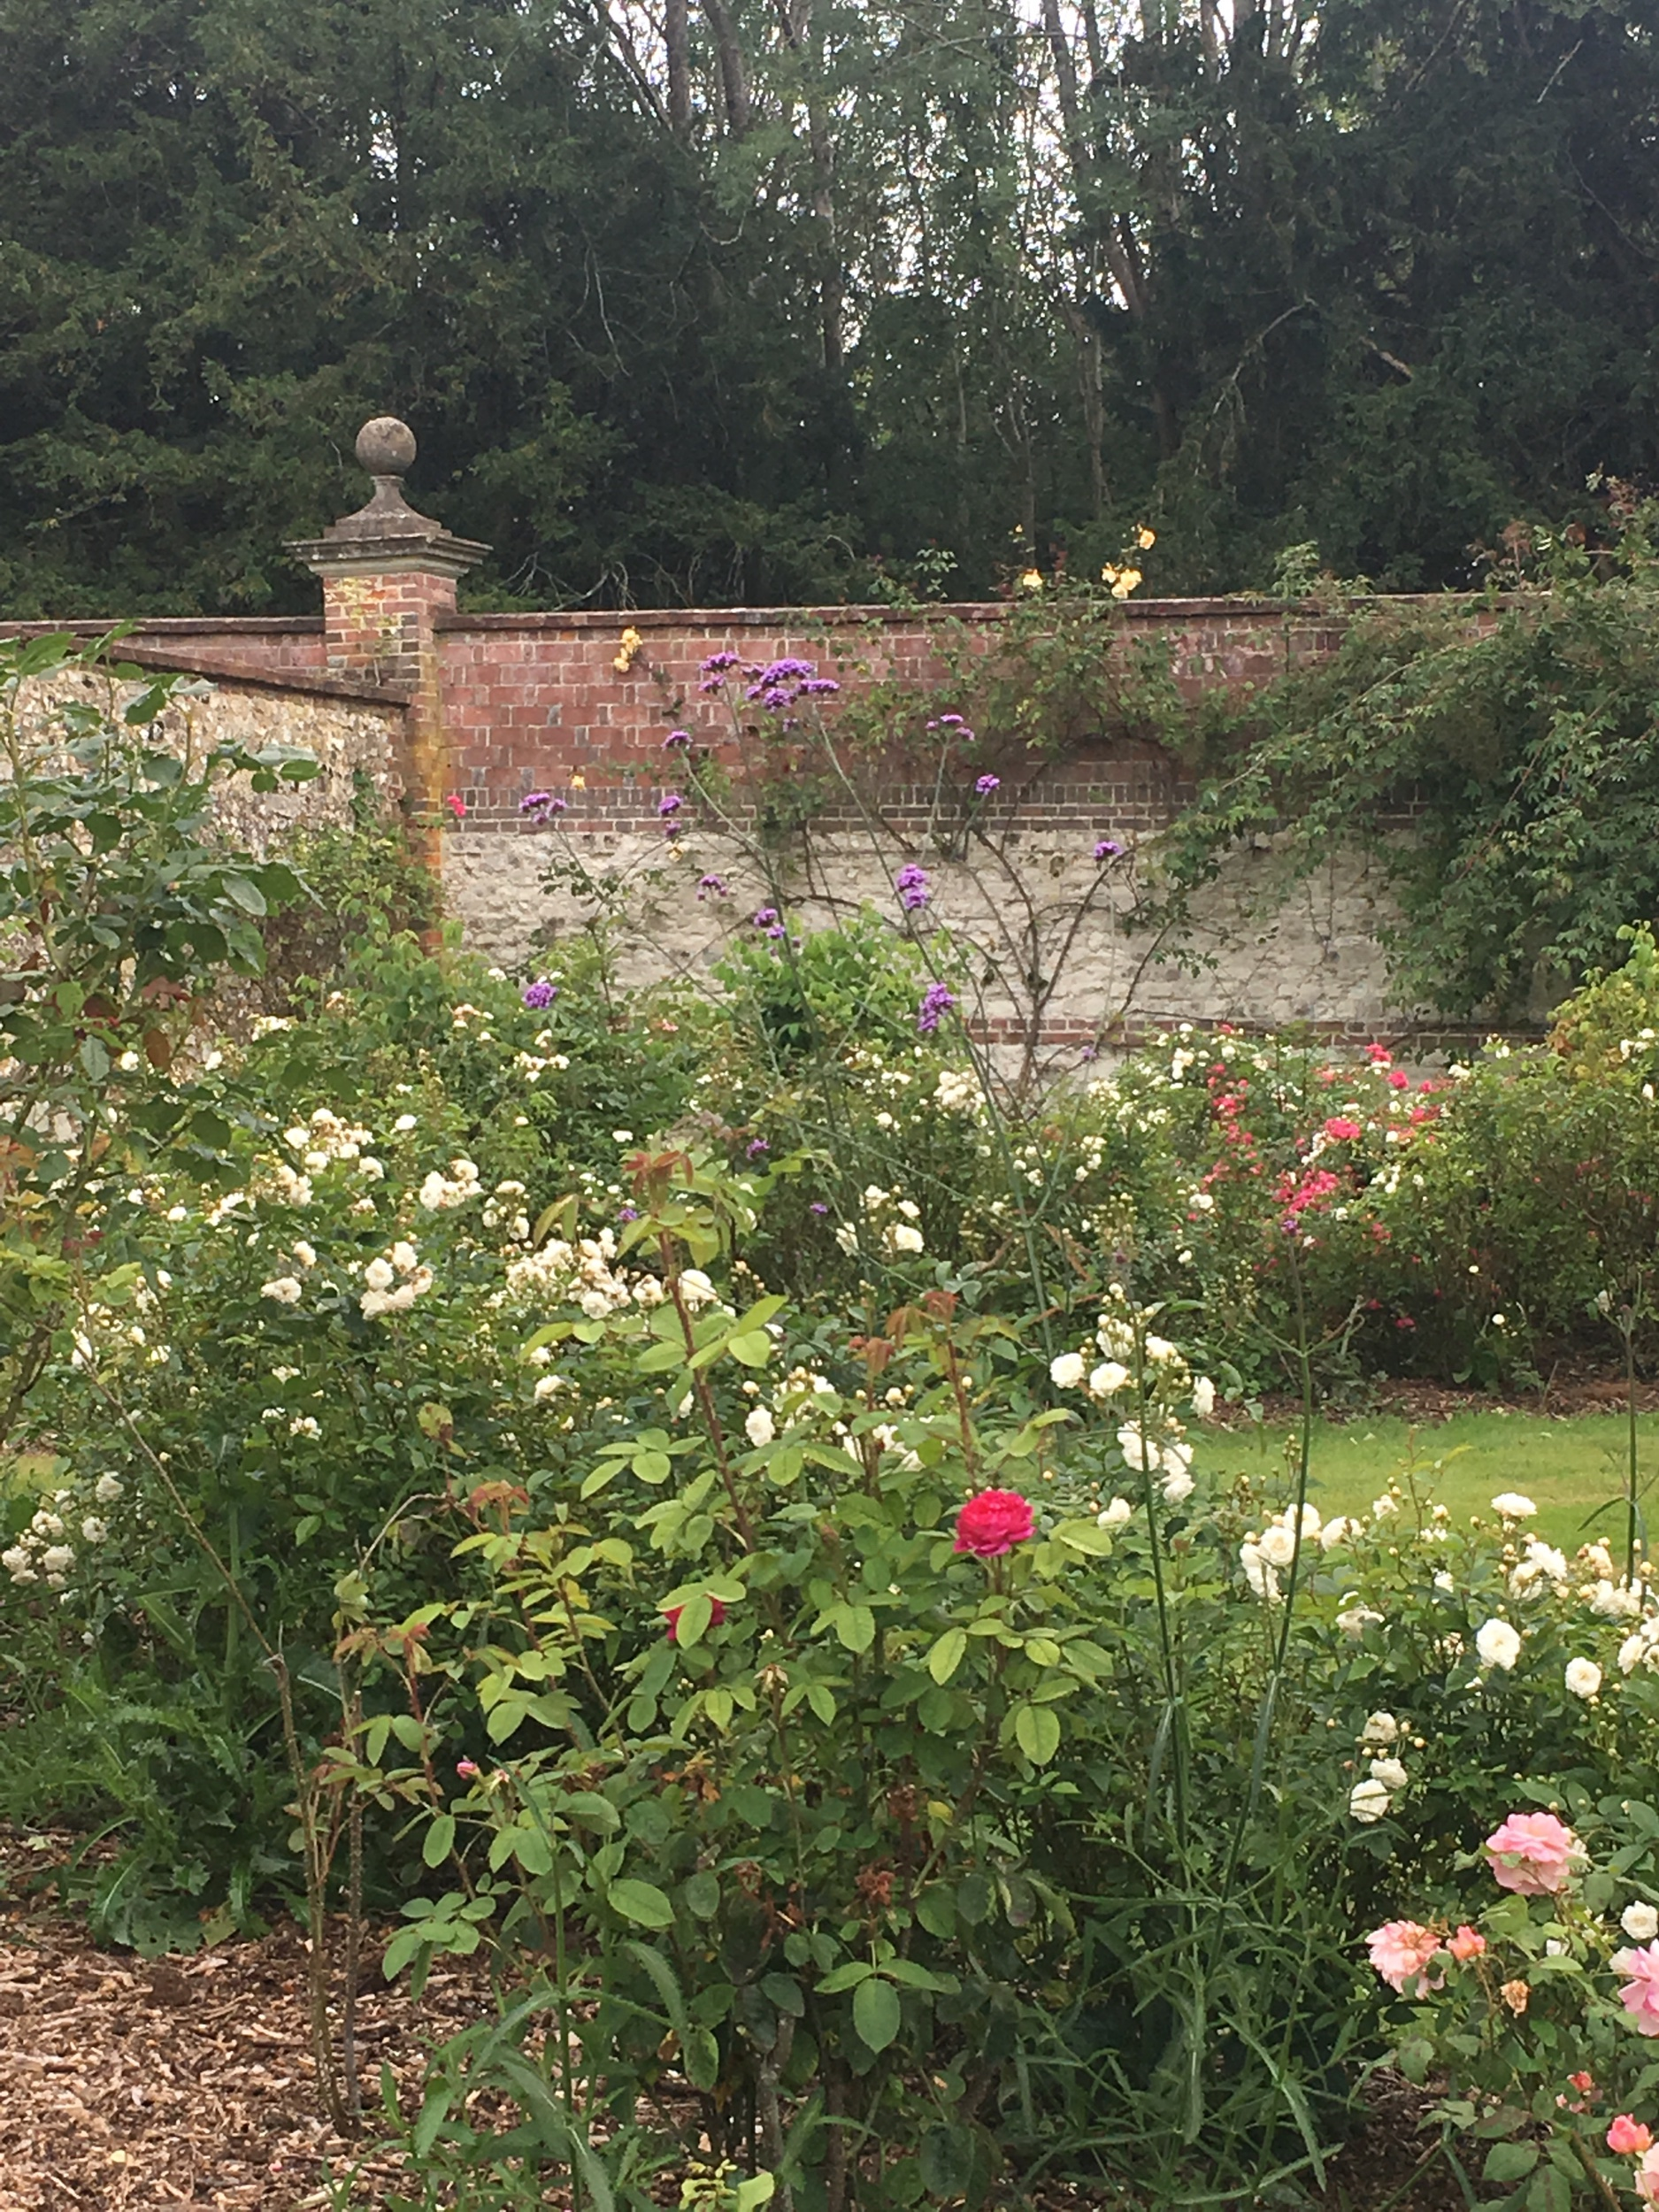 The walled garden at Chawton House